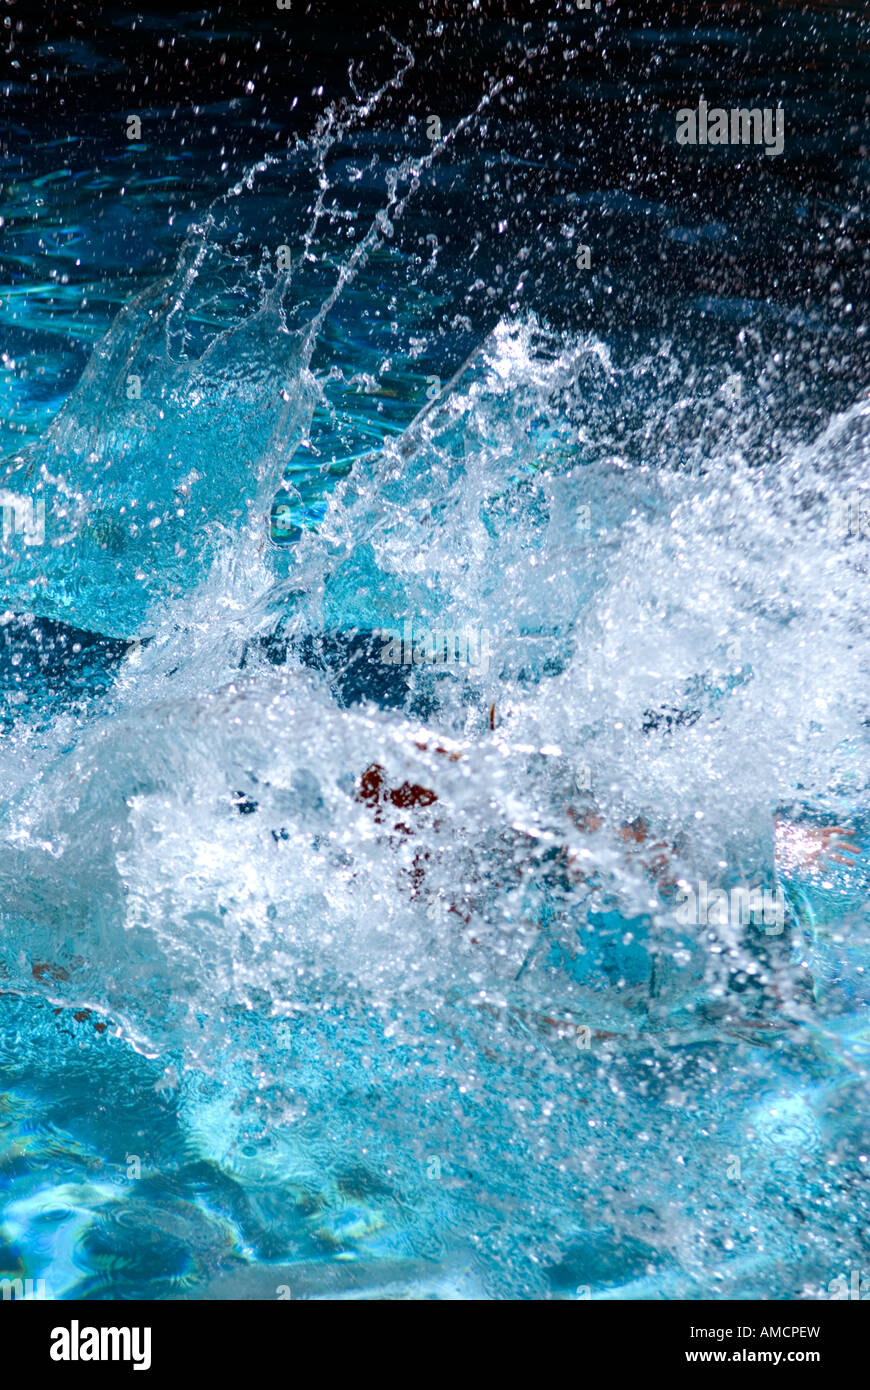 detail of splash in pool as someone jumps in - Stock Image